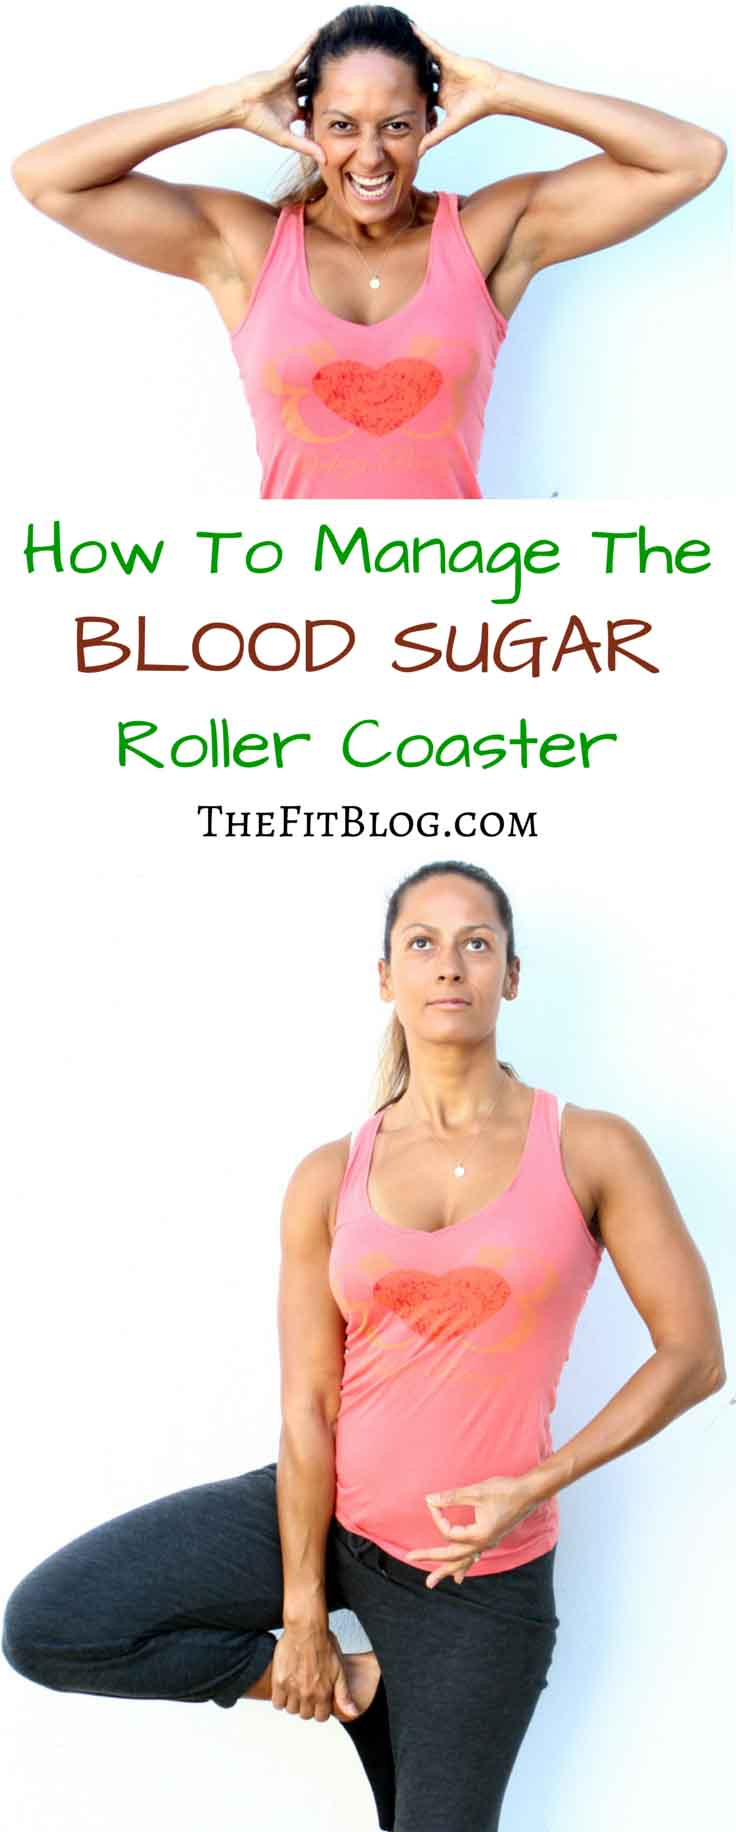 No matter how well regulated you are, sometimes your blood sugar will bounce up and down like crazy. Here are my rules for dealing with unexplained blood sugar roller coasters